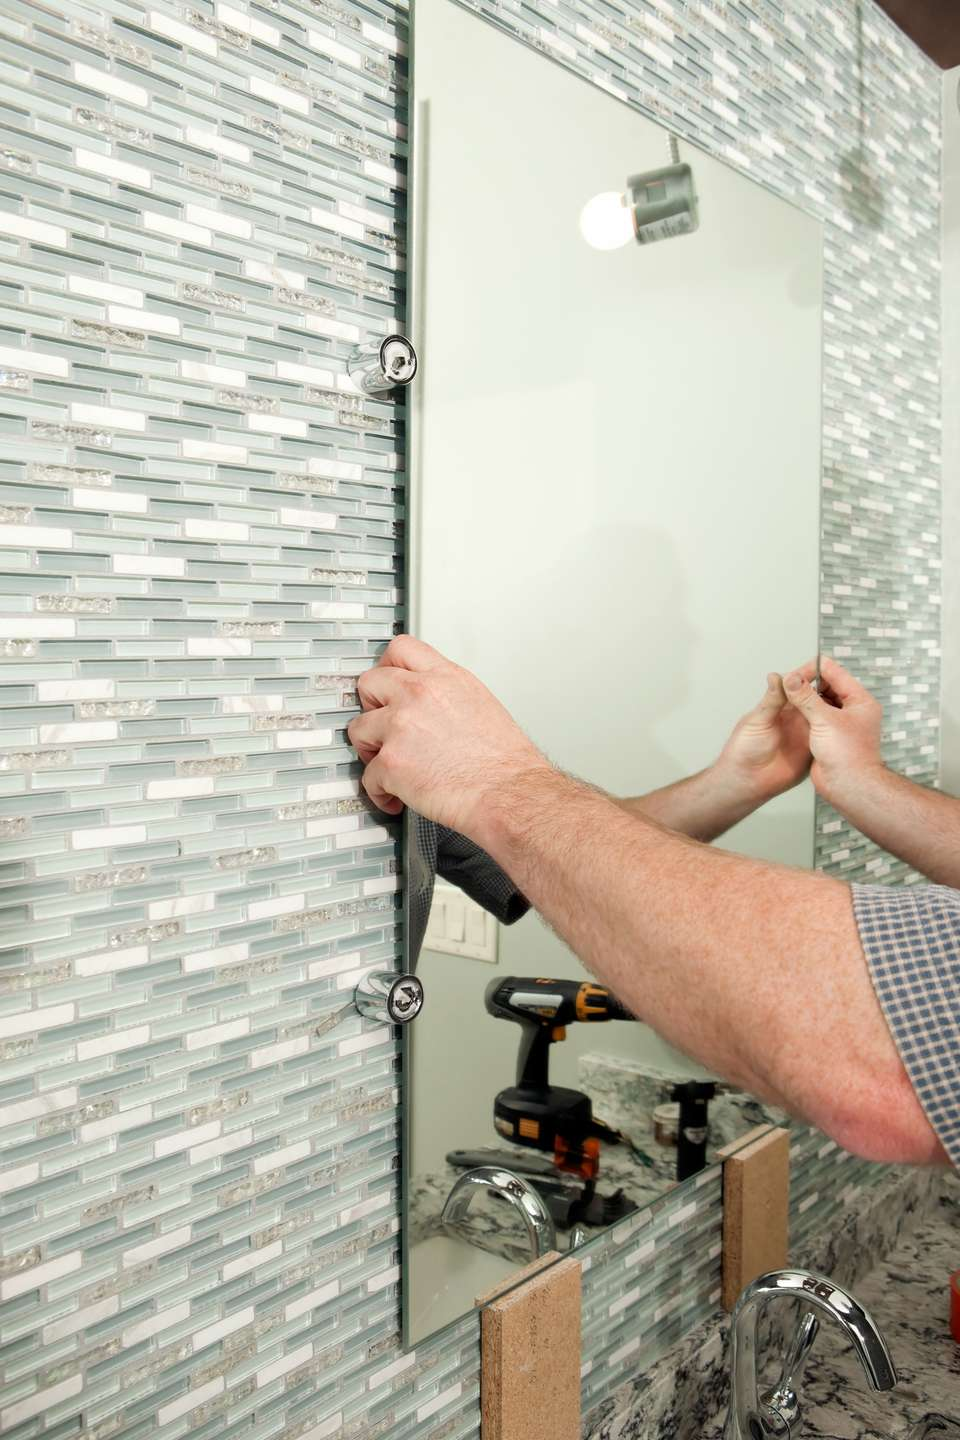 Worker installing a new bathroom mirror against a tile backsplash.